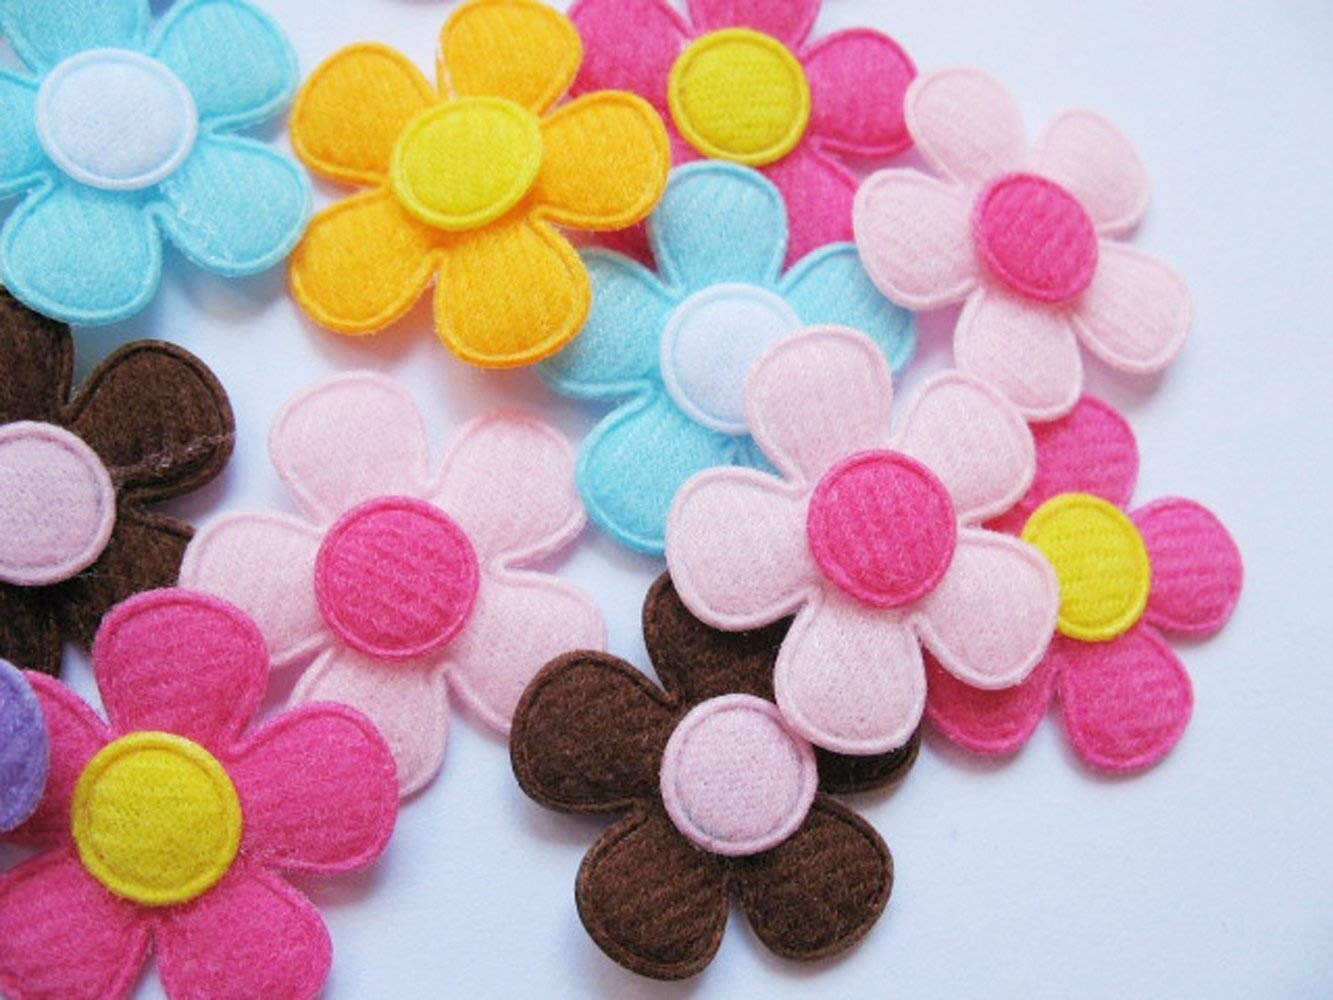 YYCRAFT Pack Of 90pcs Padded Spring Felt Flower Appliques 9 Colors 4336935229